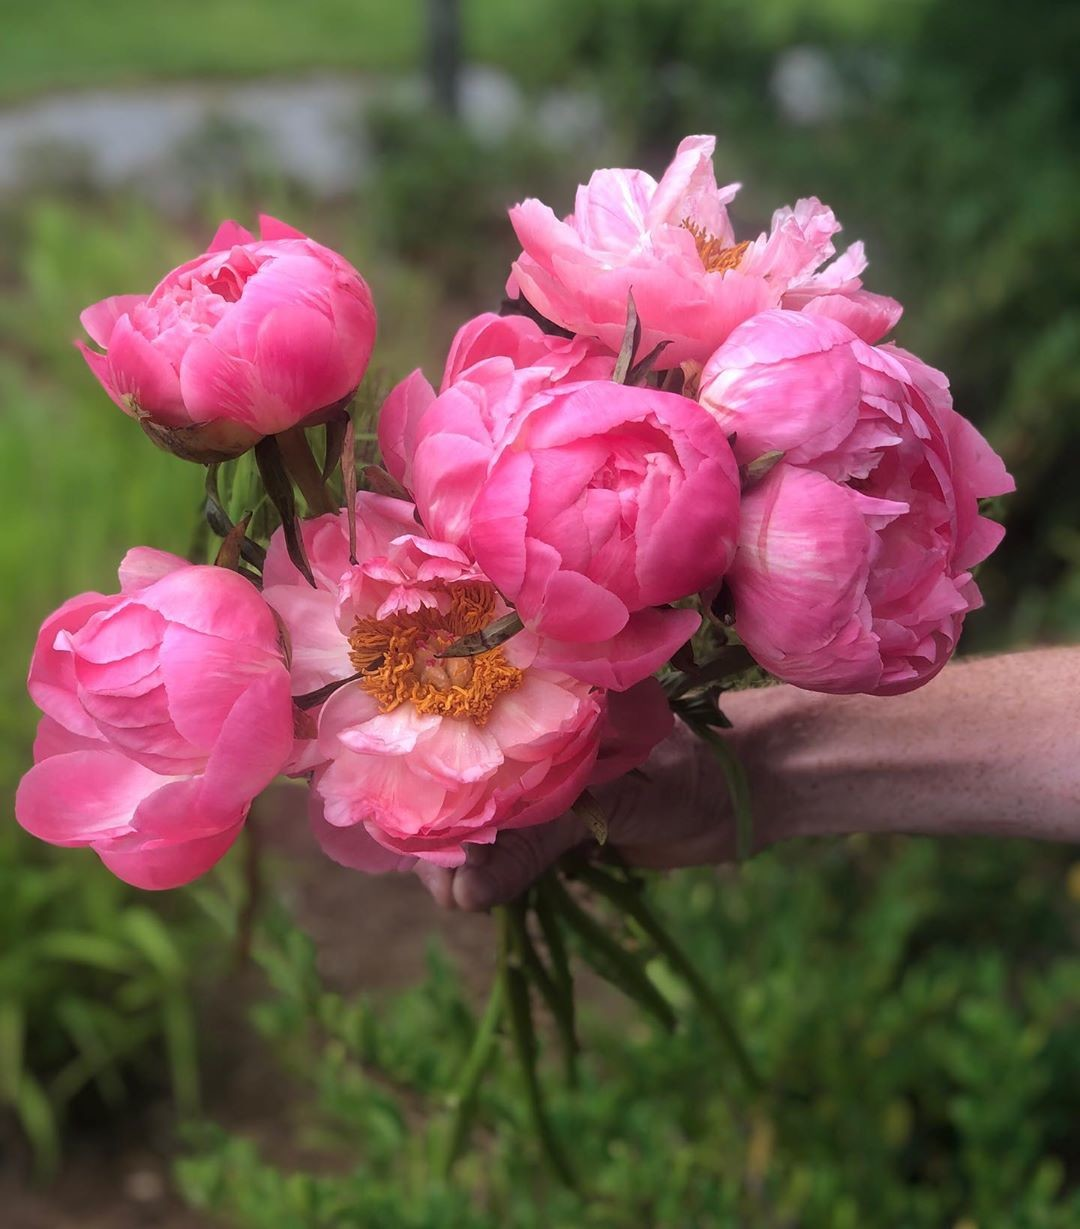 If ever there were a perfect focal flower, #coralcharmpeonies